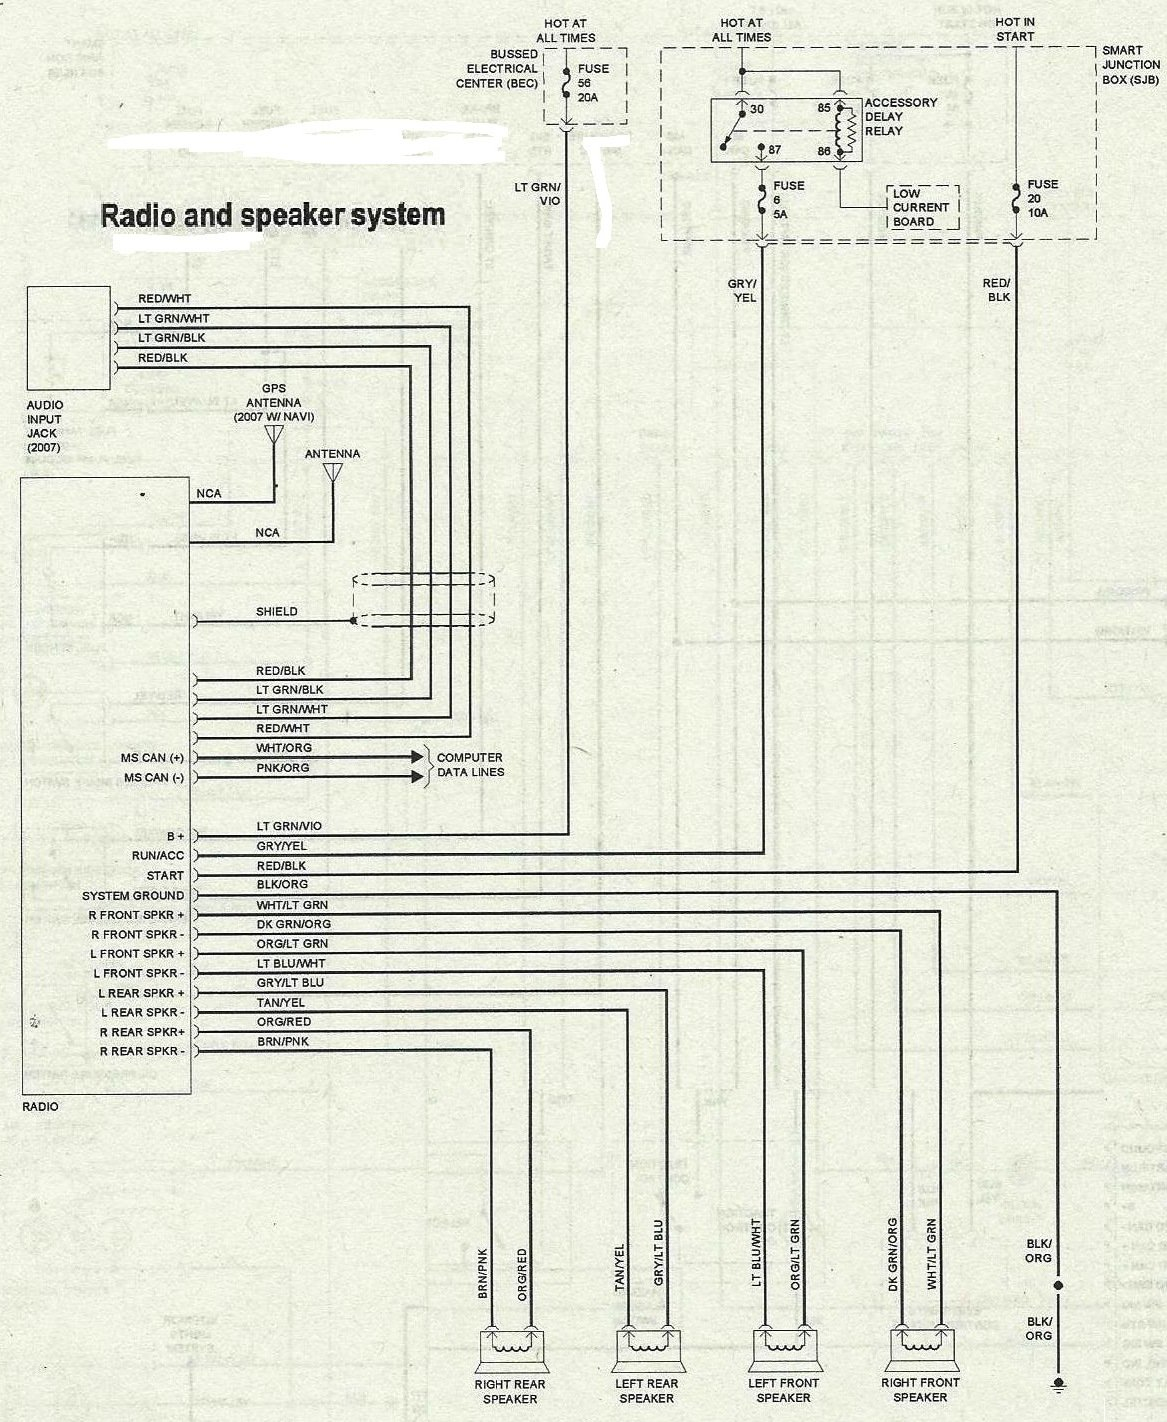 2005 ford 500 radio wiring diagram 2005 image for a ford 500 wiring diagram for auto wiring diagram schematic on 2005 ford 500 radio